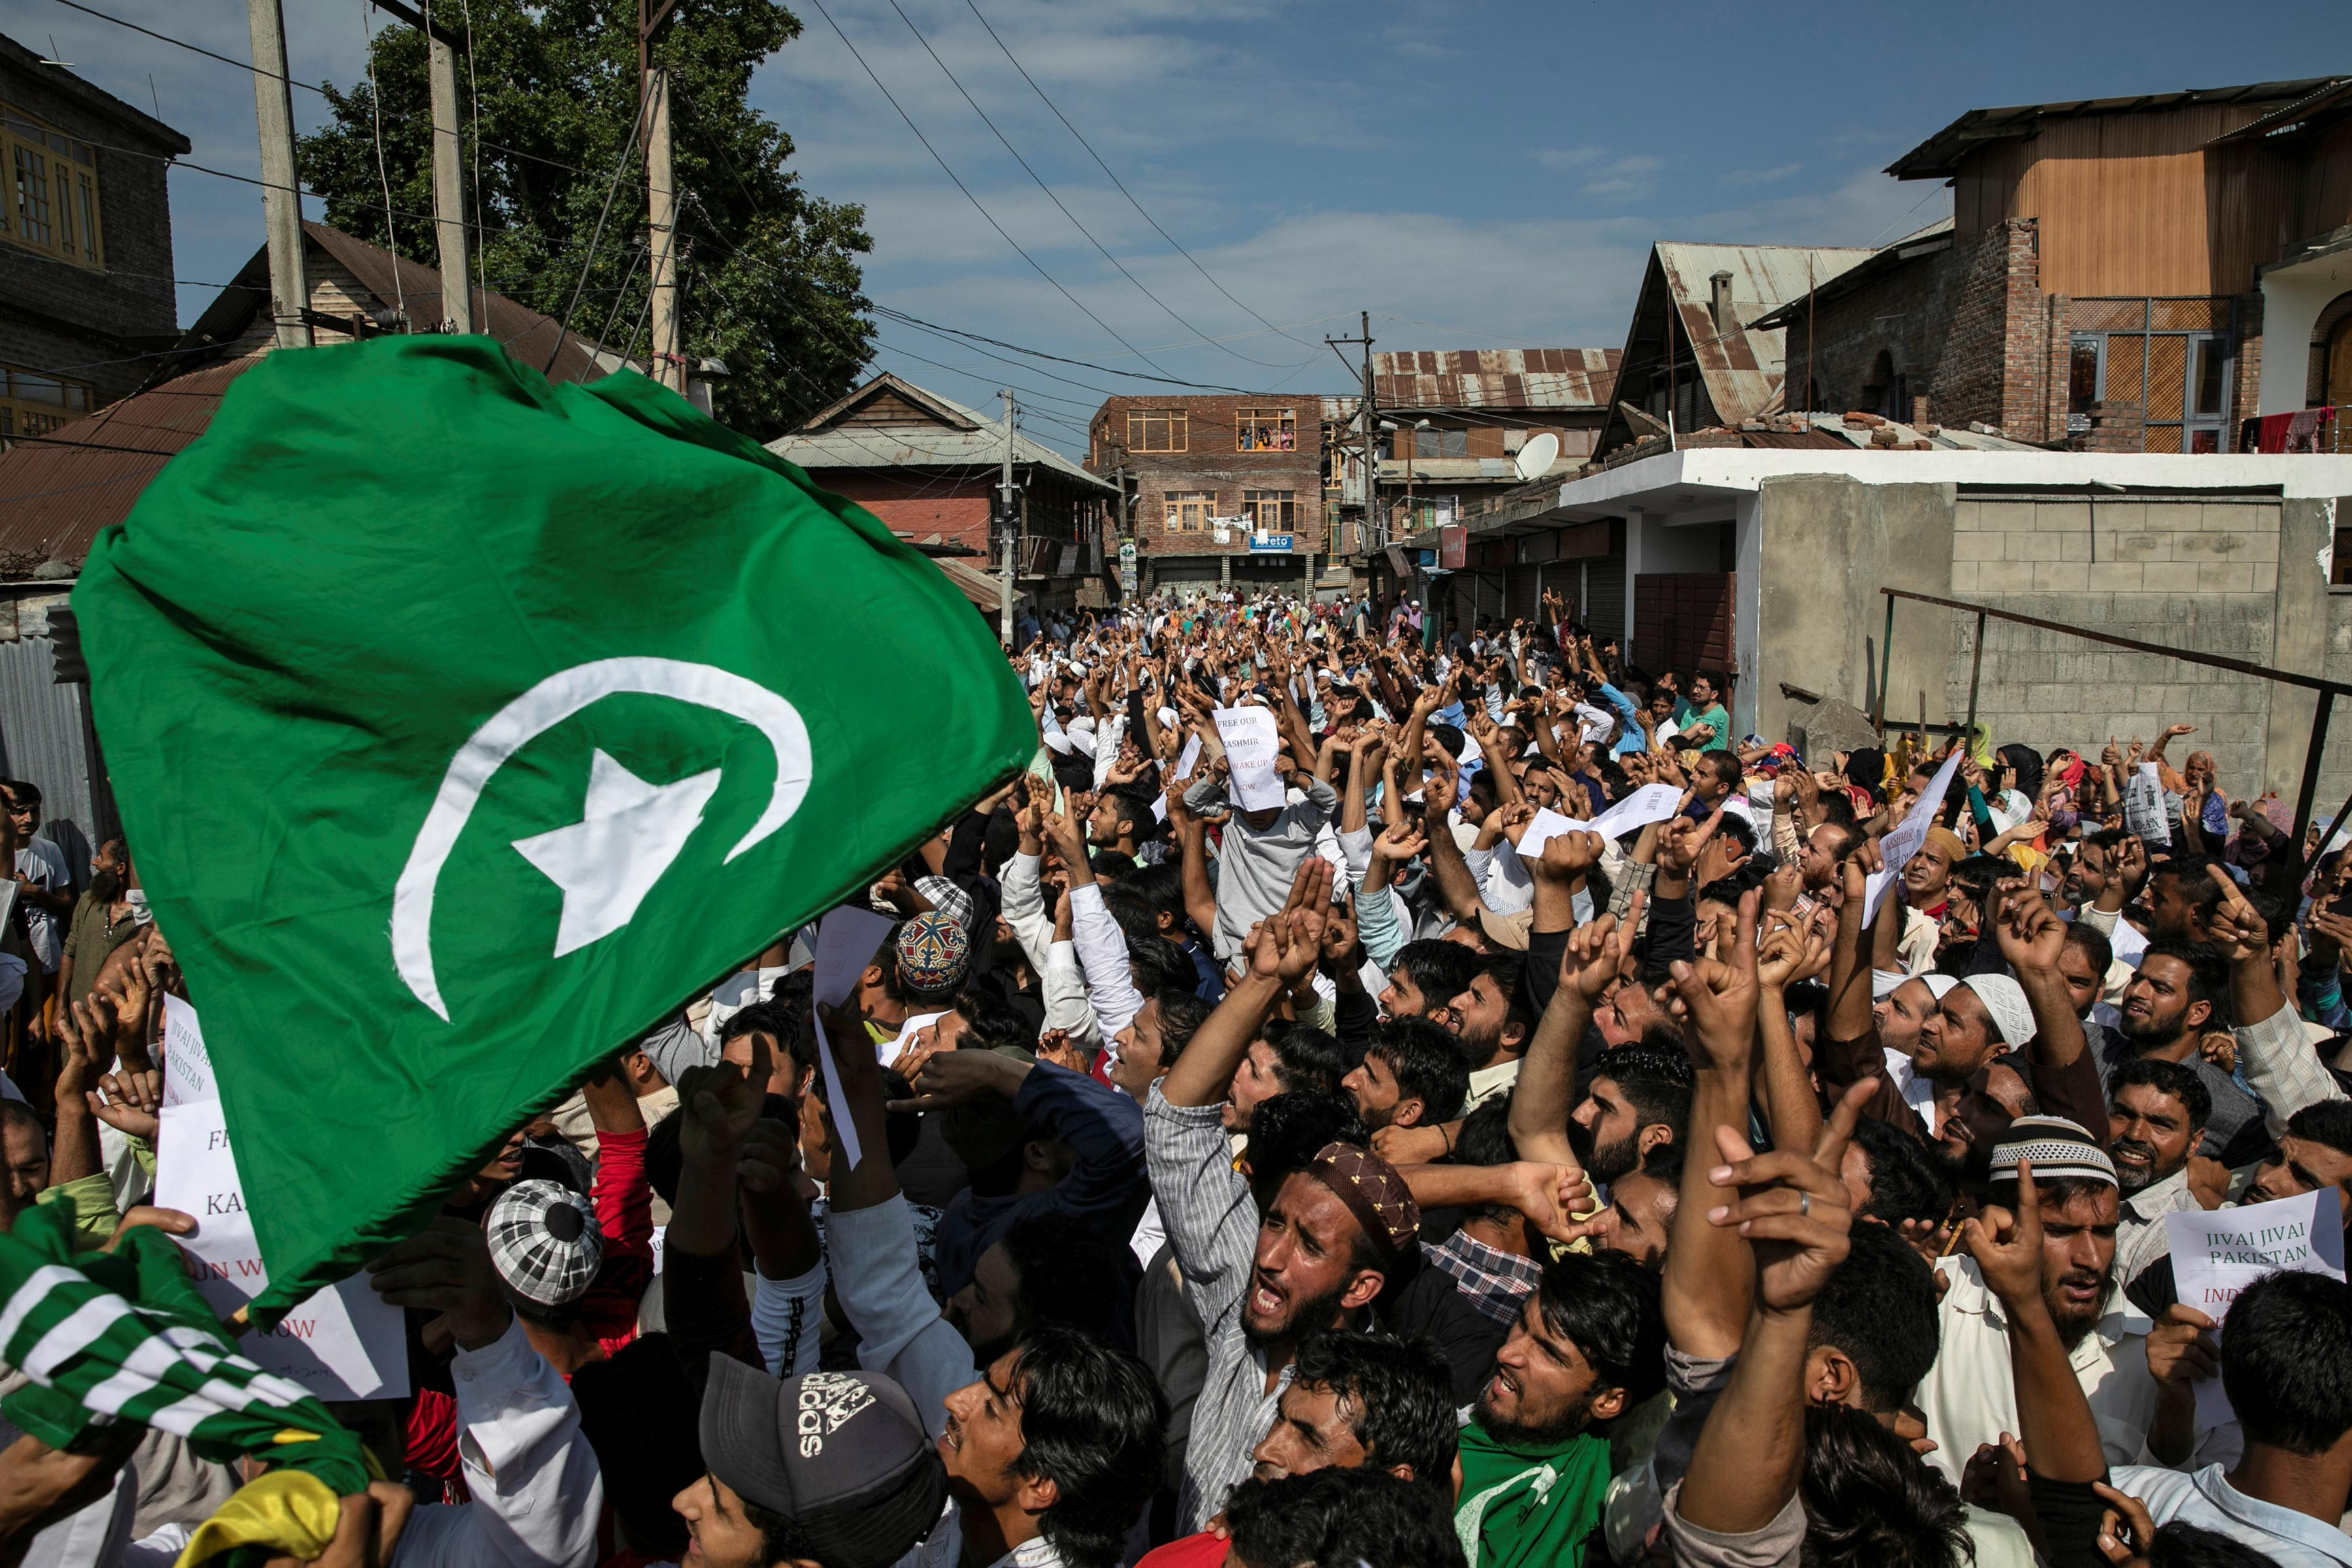 12 August 2019: Despite Indian government restrictions, Kashmiris protest in Srinagar after Eid al-Adha prayers. (Photograph by Reuters/Danish Siddiqui)